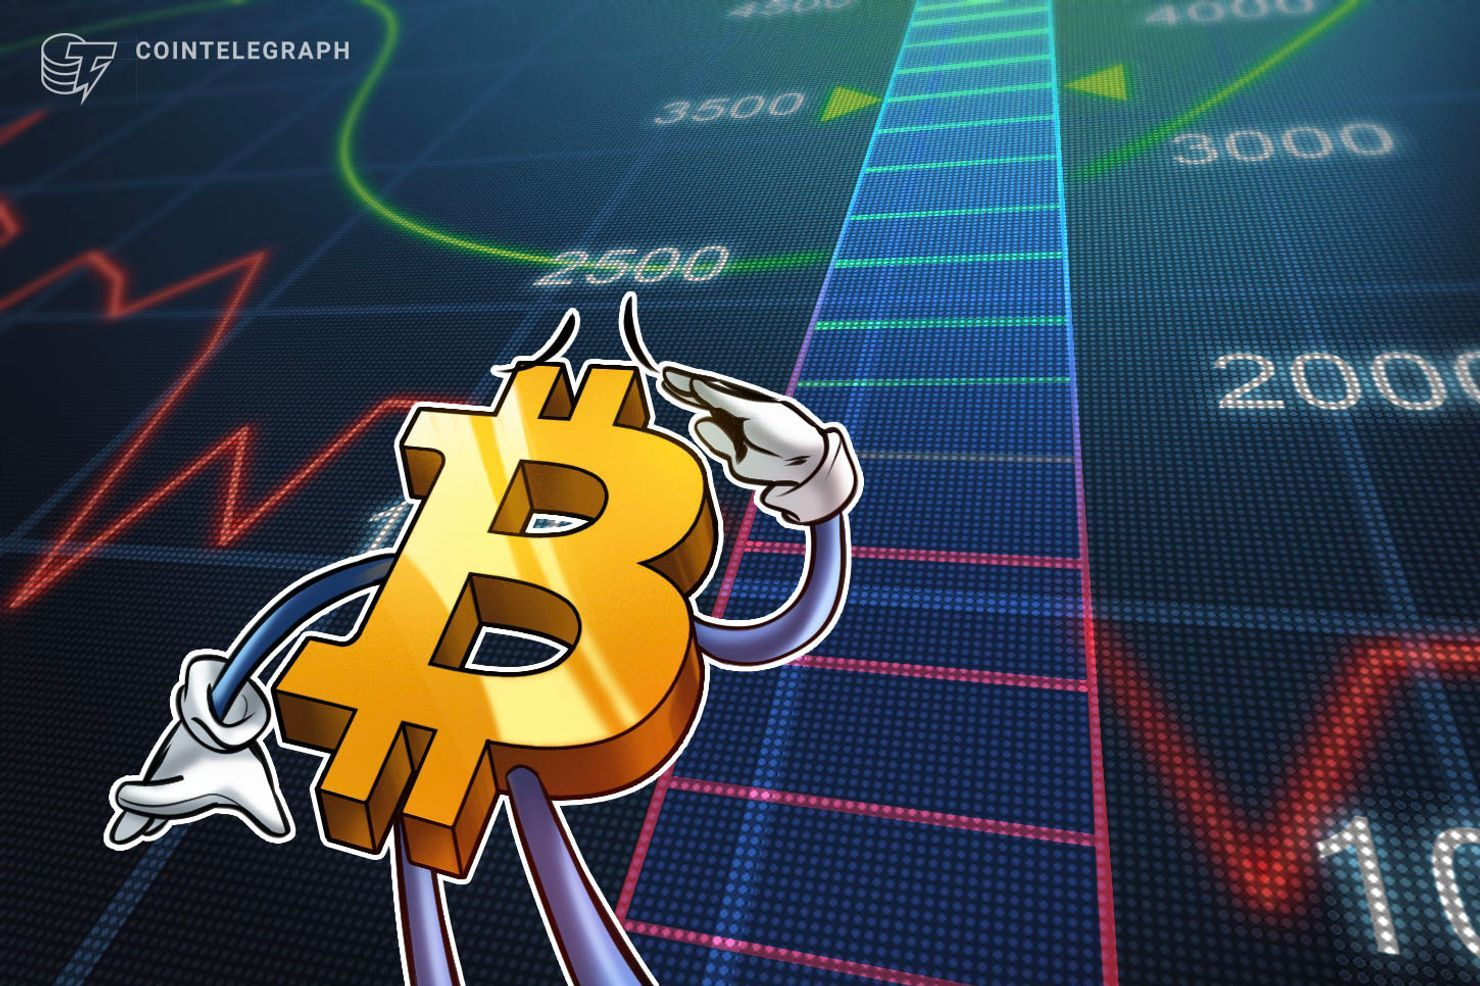 Crypto Market Rally Continues With Bitcoin Above $4,900, Tech Stocks Bounce Back